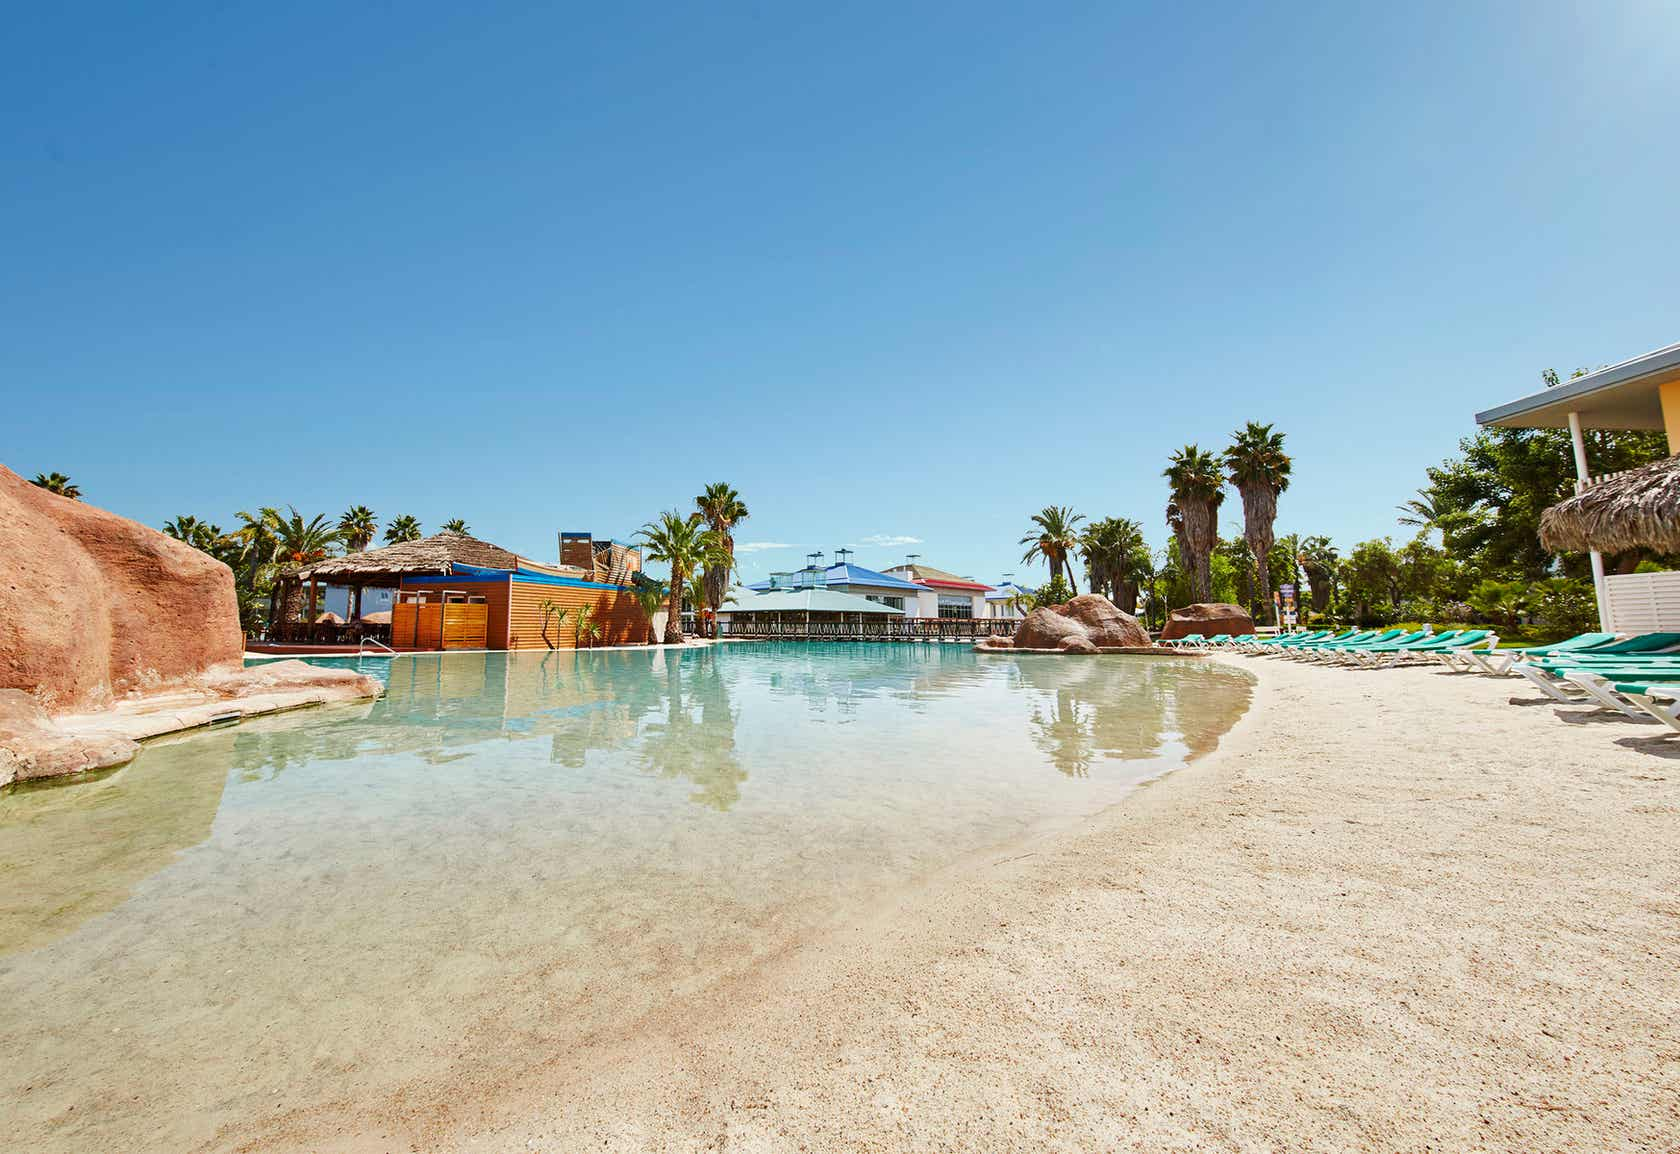 Portaventura Hotel Caribe – Tickets Included